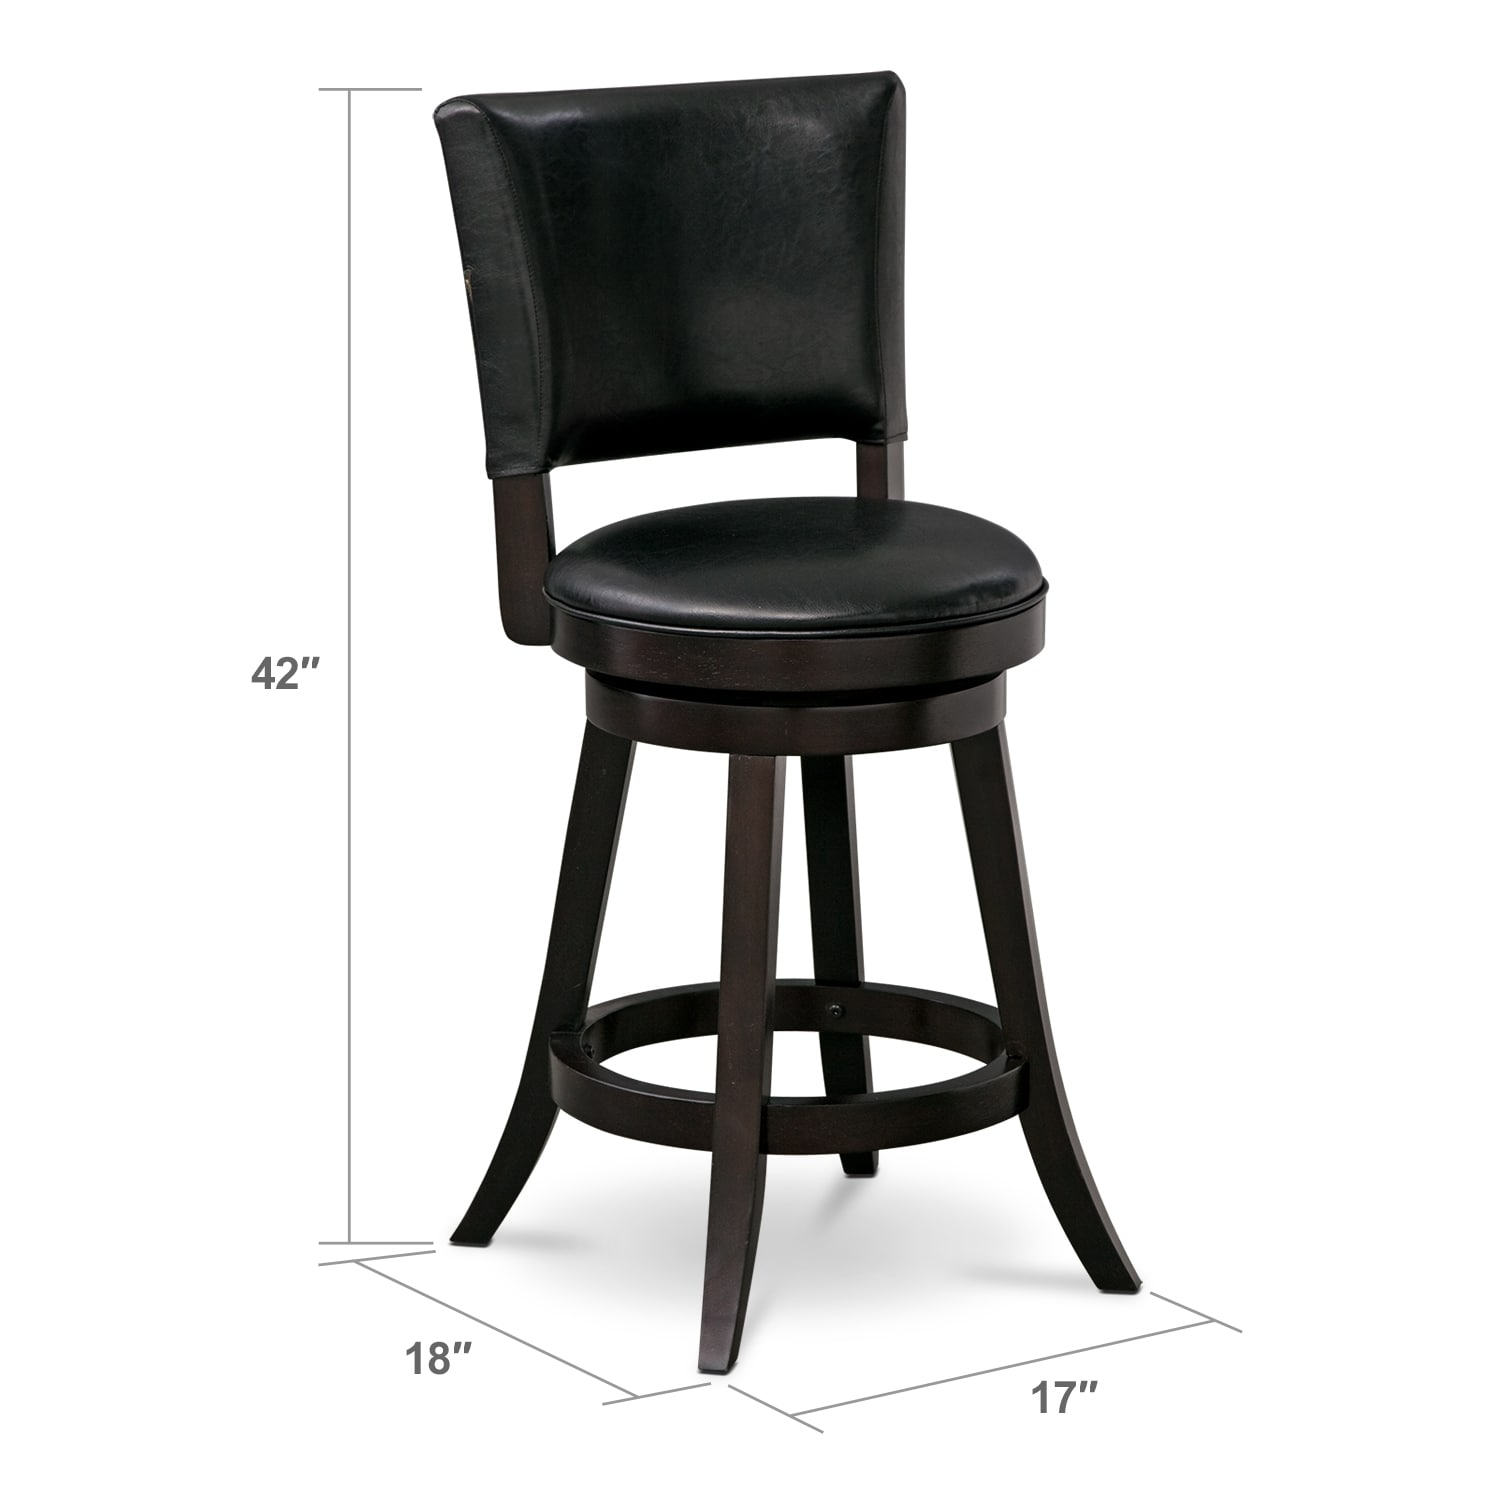 Dining Room Furniture - Easton Counter-Height Stool